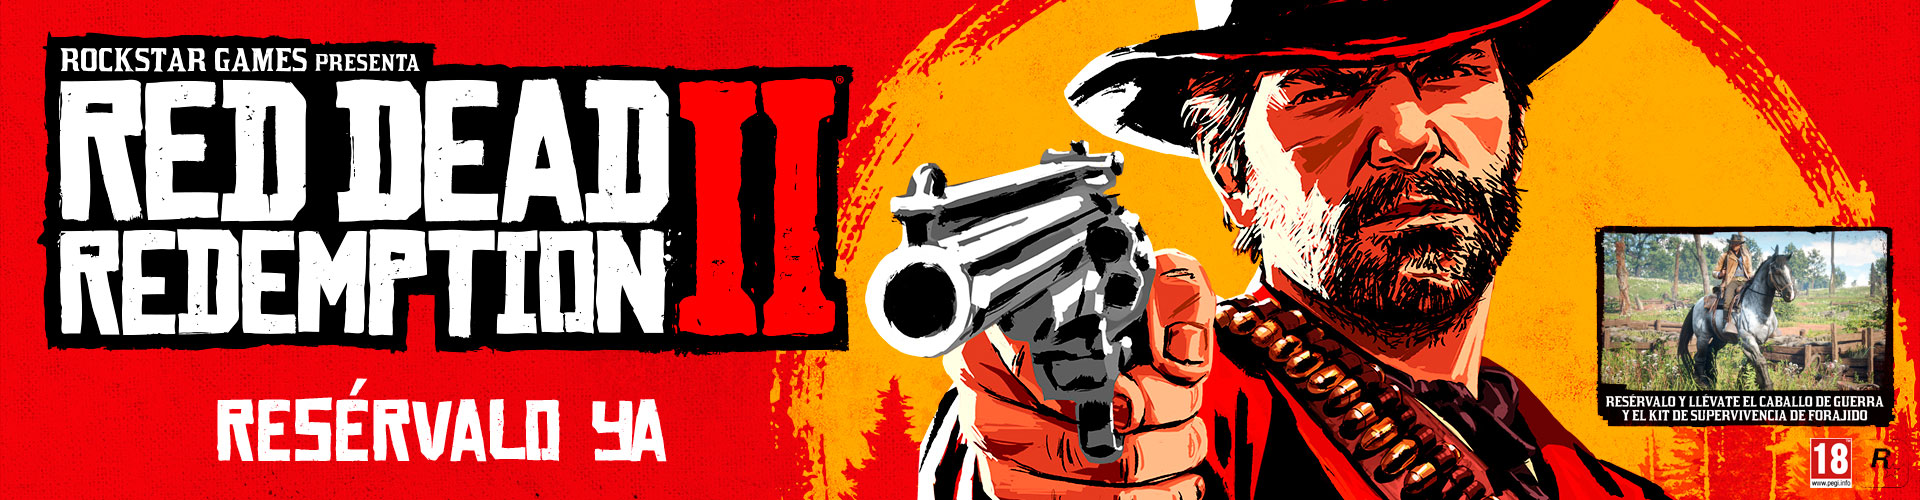 Red Dead Redemption 2 Reserva